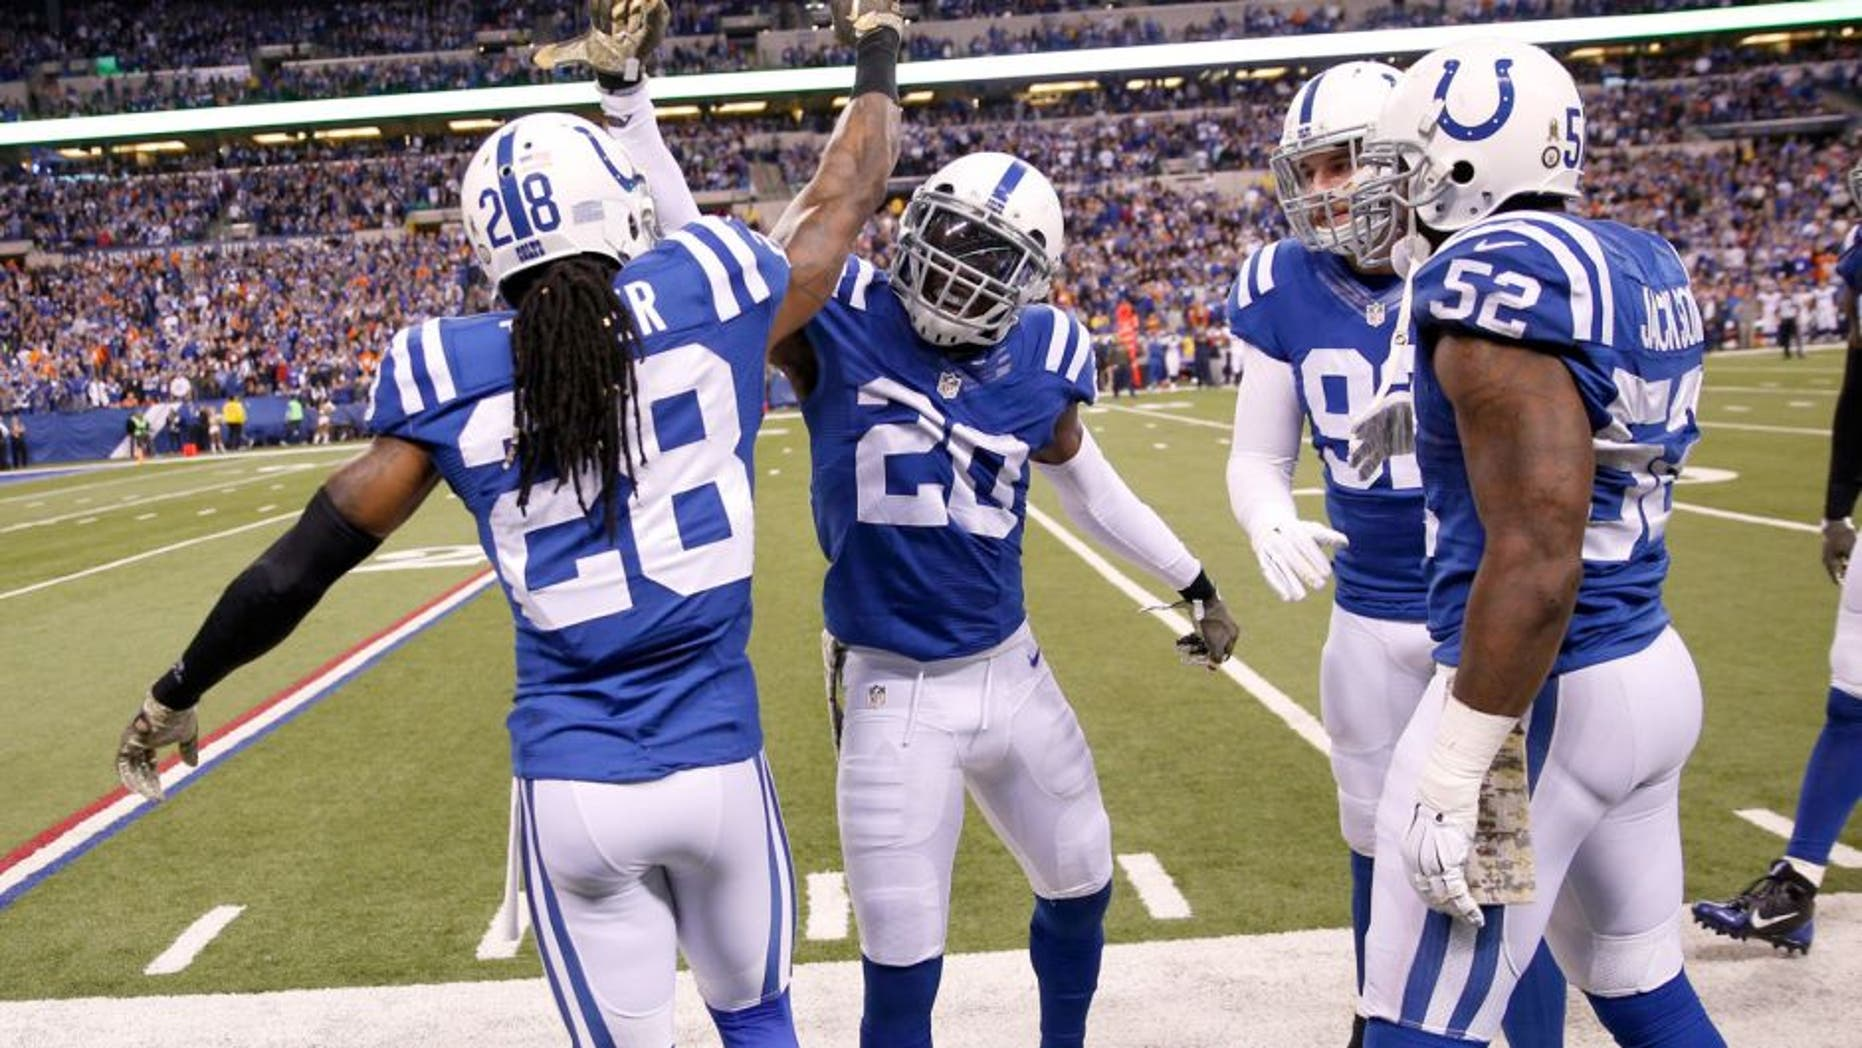 Nov 8, 2015; Indianapolis, IN, USA; Indianapolis Colts cornerback Darius Butler (20) is congratulated by his teammates after making an interception against the Denver Broncos in the 4th quarter at Lucas Oil Stadium. Indianapolis defeats Denver 27-24. Mandatory Credit: Brian Spurlock-USA TODAY Sports